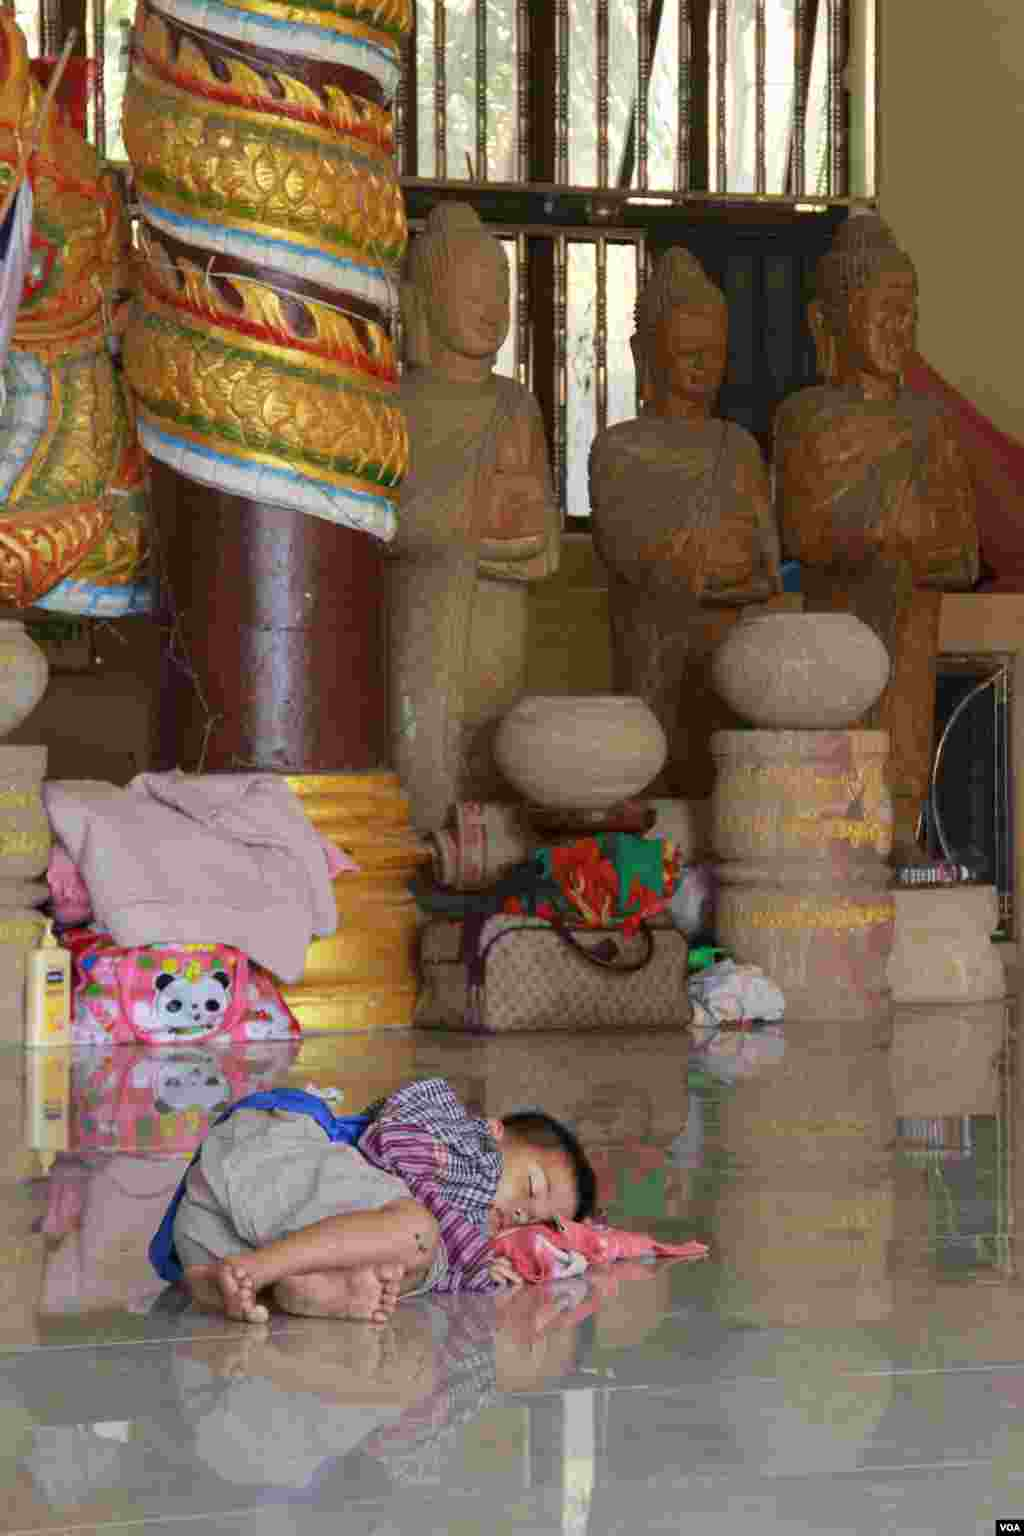 A boy is taking a nap during an afternoon in Samakki Raingsey temple in Phnom Penh, Cambodia, February 5, 2015.